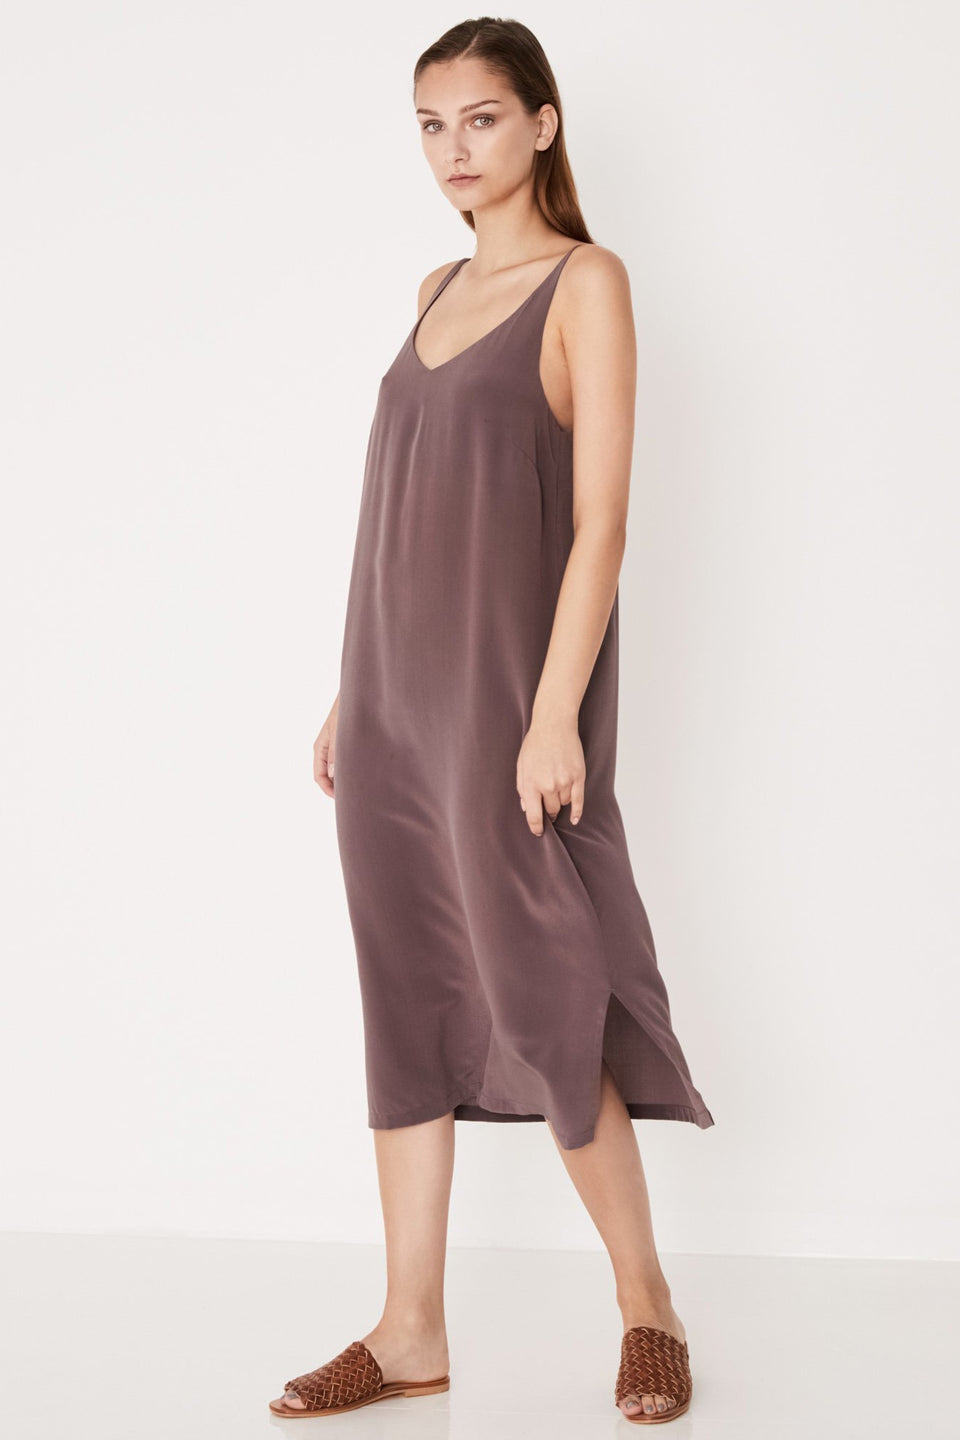 Silk Deep V Cami Dress - Mauve